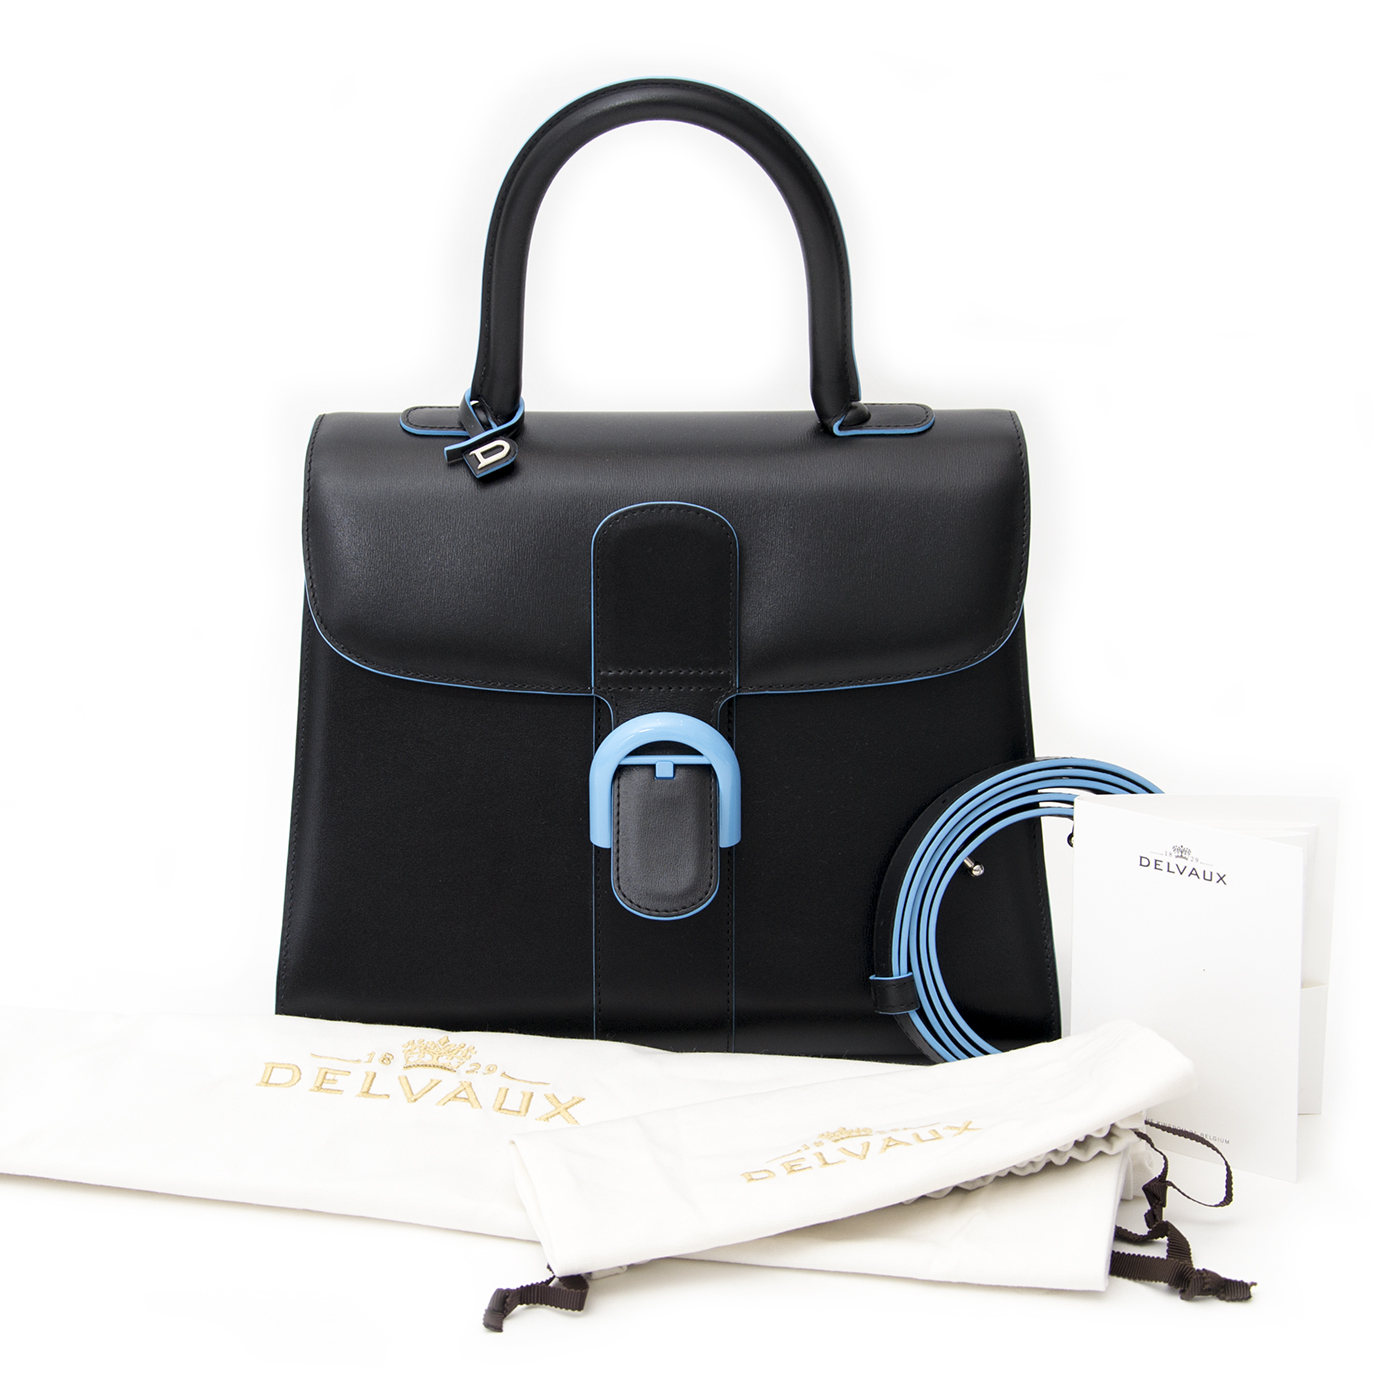 Buy authentic Delvaux Magritte at the right price at LabelLOV vintage webshop. Luxe, vintage, fashion. Safe and secure online shopping. Antwerp, Belgium.